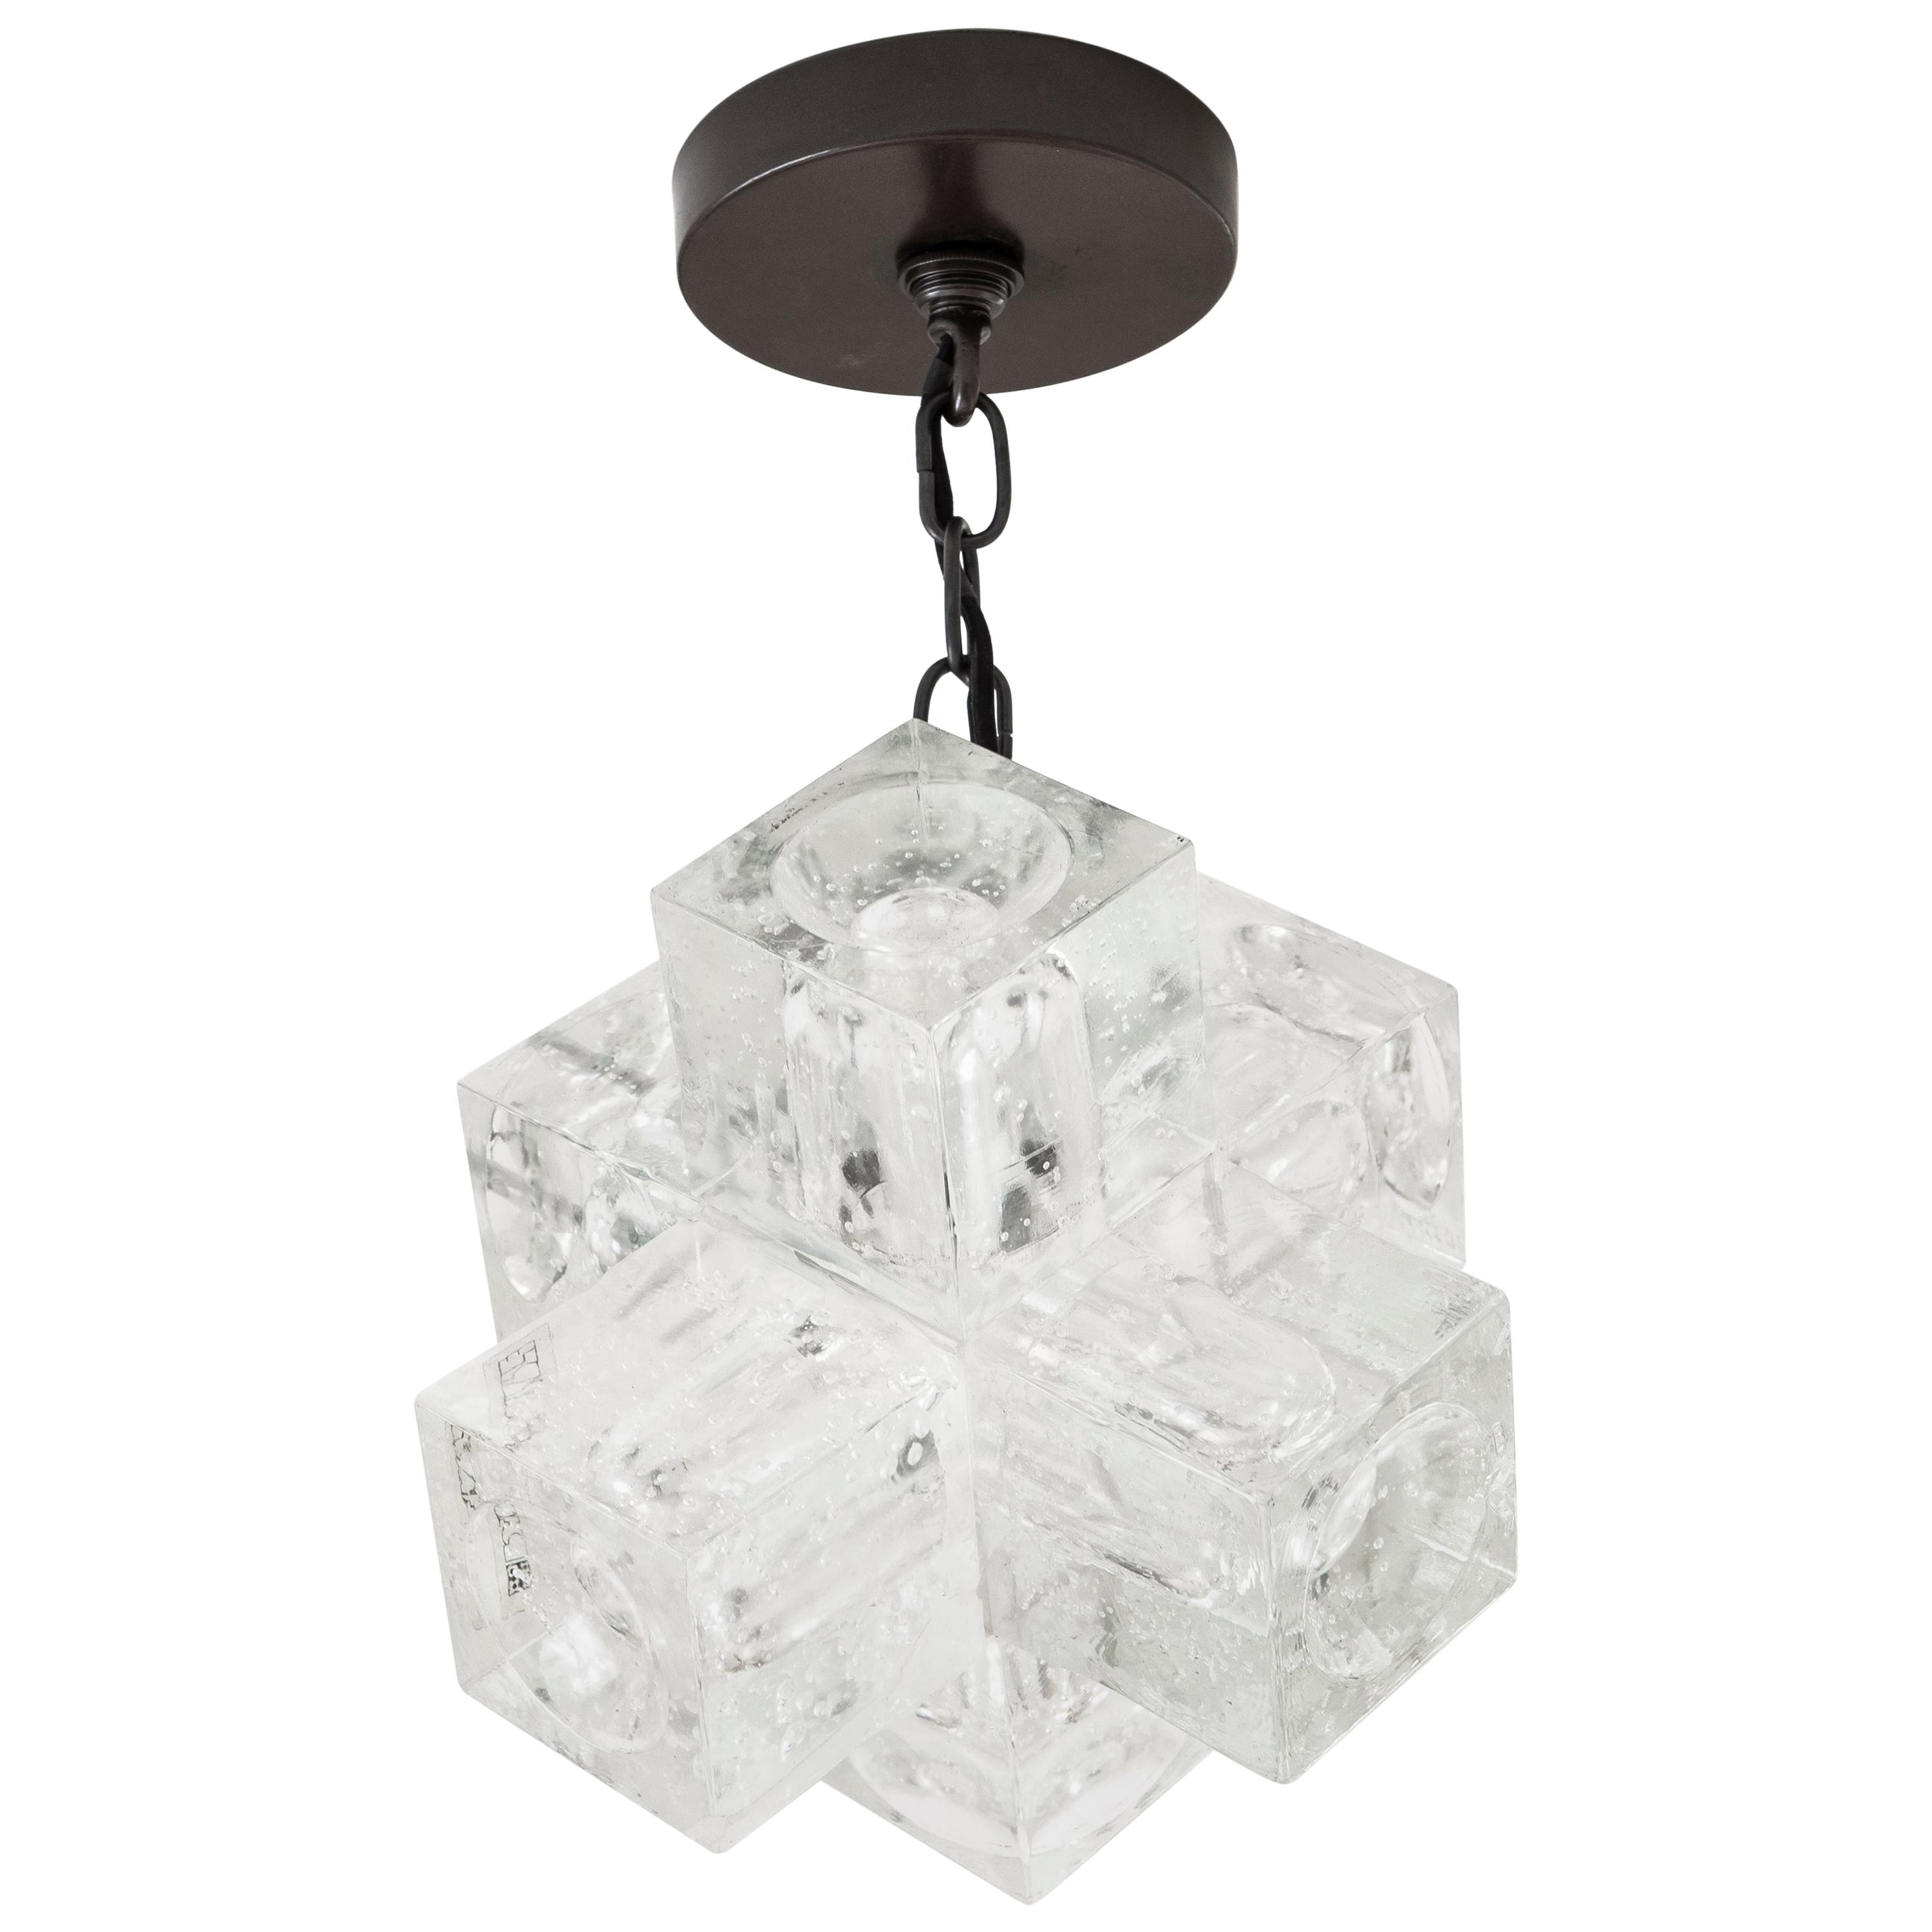 1960S Italian Glass Cube Chandelierpoliarte Throughout Albano 4 Light Crystal Chandeliers (Gallery 25 of 30)